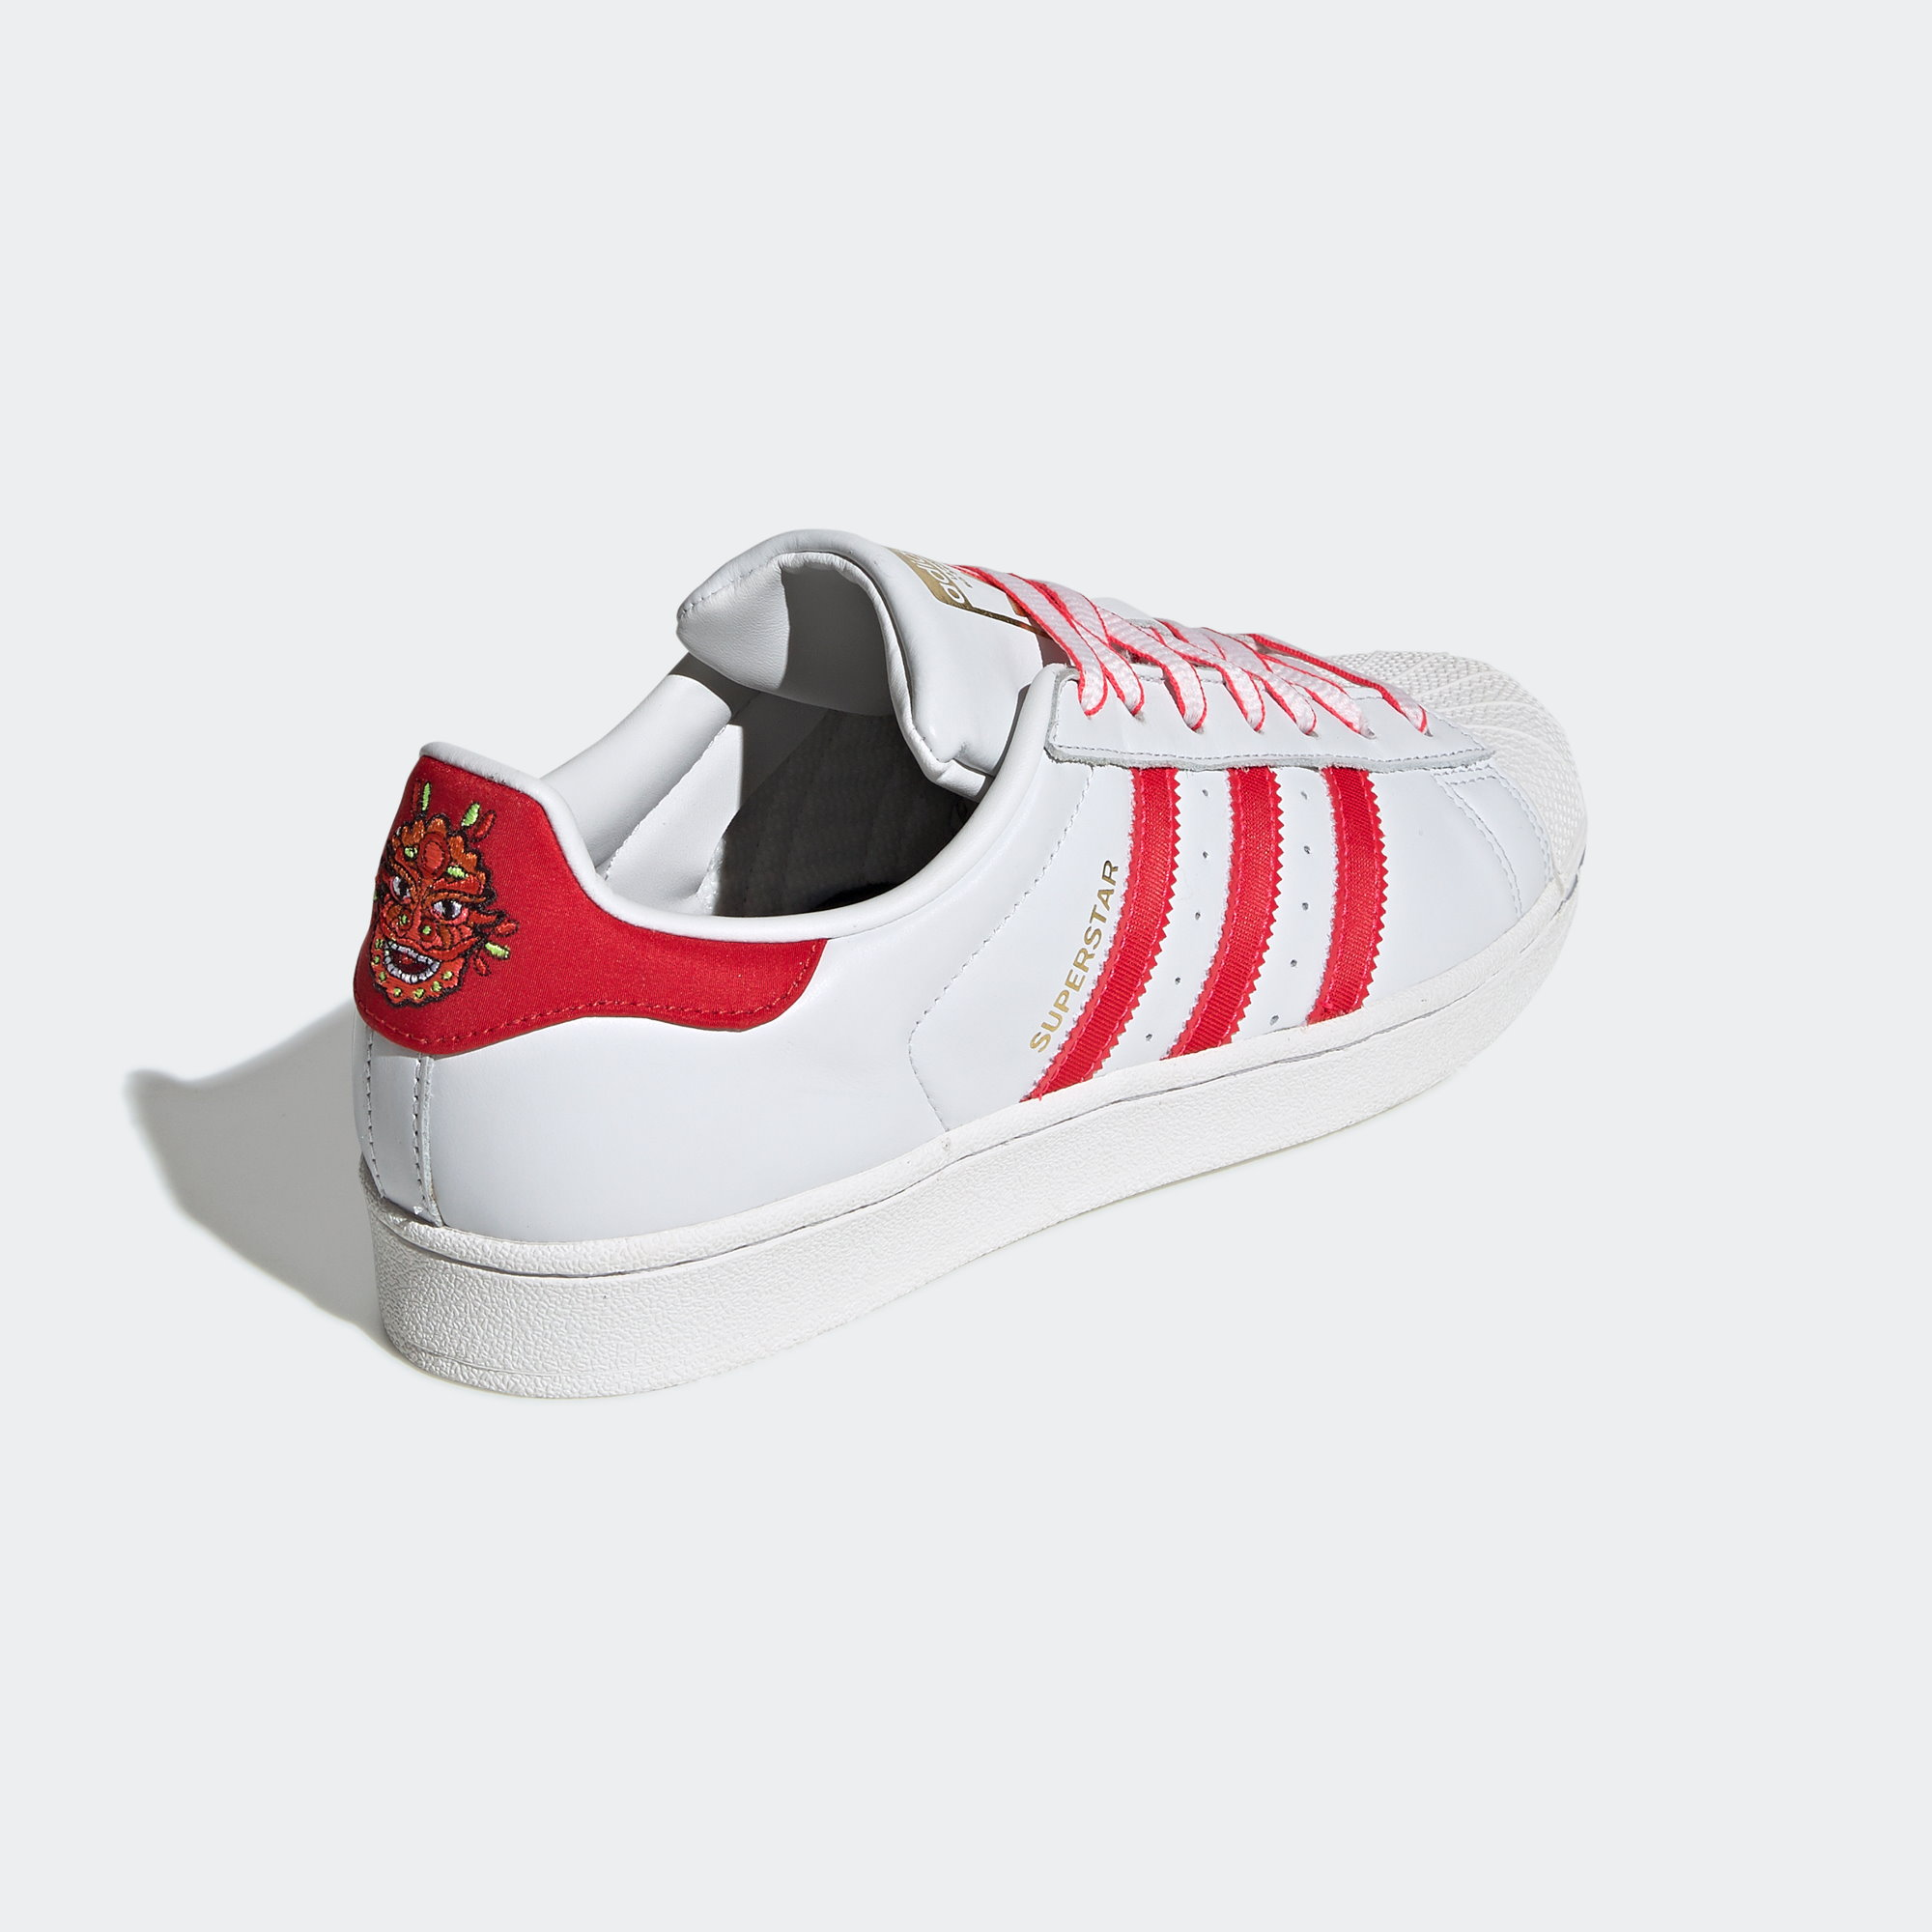 """trattenere compagnia Reciproco  Adidas Superstar 2 Chinese New Year 2018/2019 """"Year of the Pig""""   ///  Superstar.shoes"""